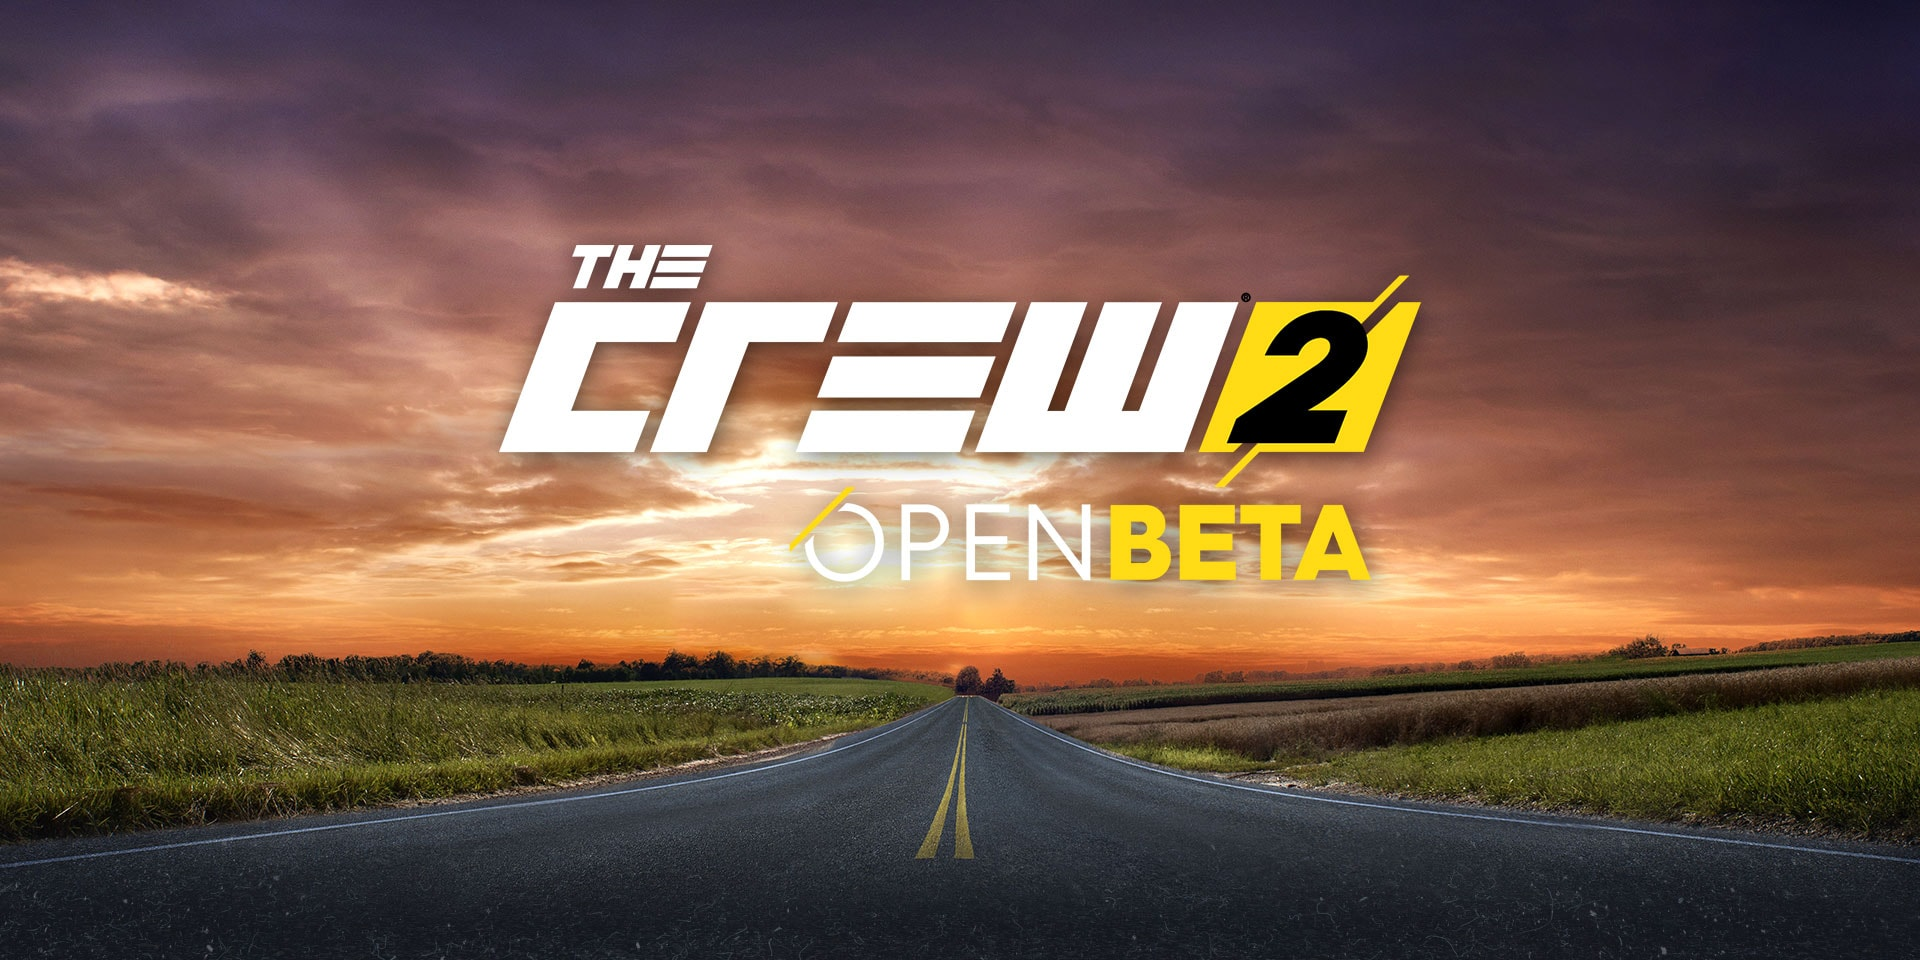 The crew beta support